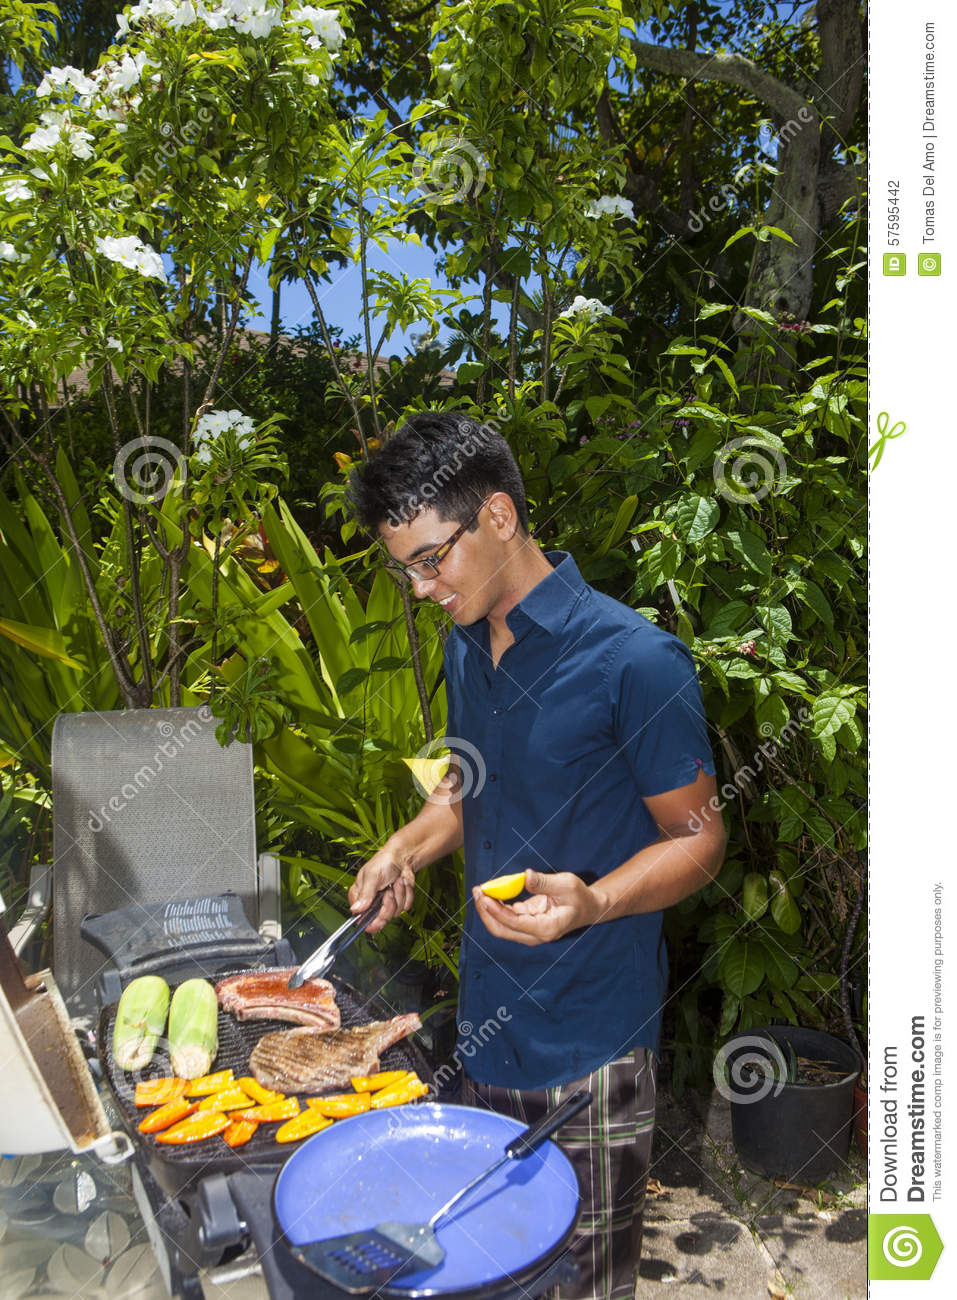 asian single men in hawaiian gardens 90716 is a densely populated, upscale urban zip code in hawaiian gardens, california the population is racially diverse, younger, and about evenly divided between singles and married.